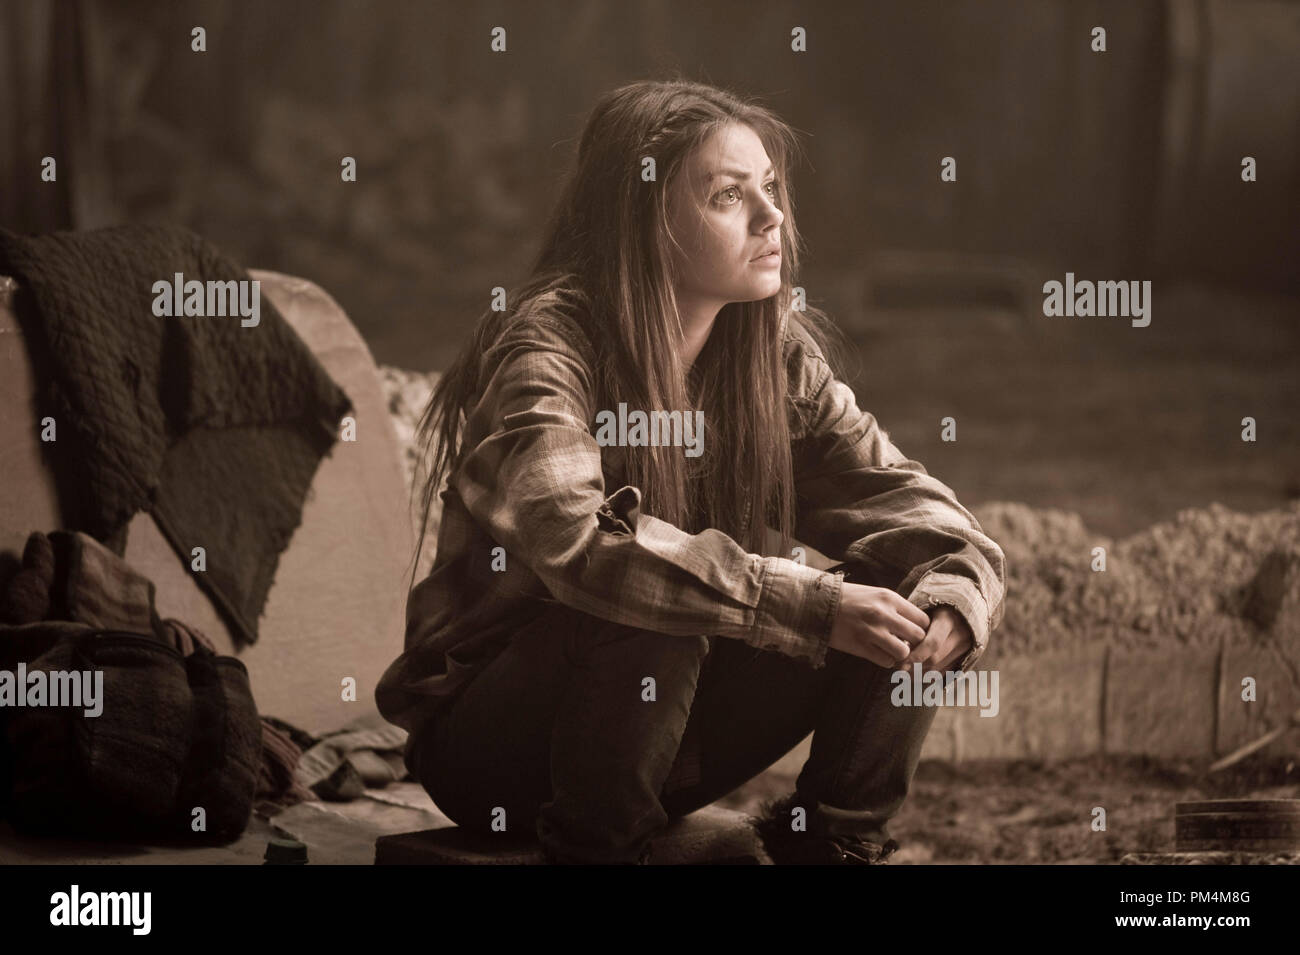 """MILA KUNIS as Solara in Alcon Entertainment's action adventure film """"The Book of Eli,"""" a Warner Bros. Pictures release. Stock Photo"""